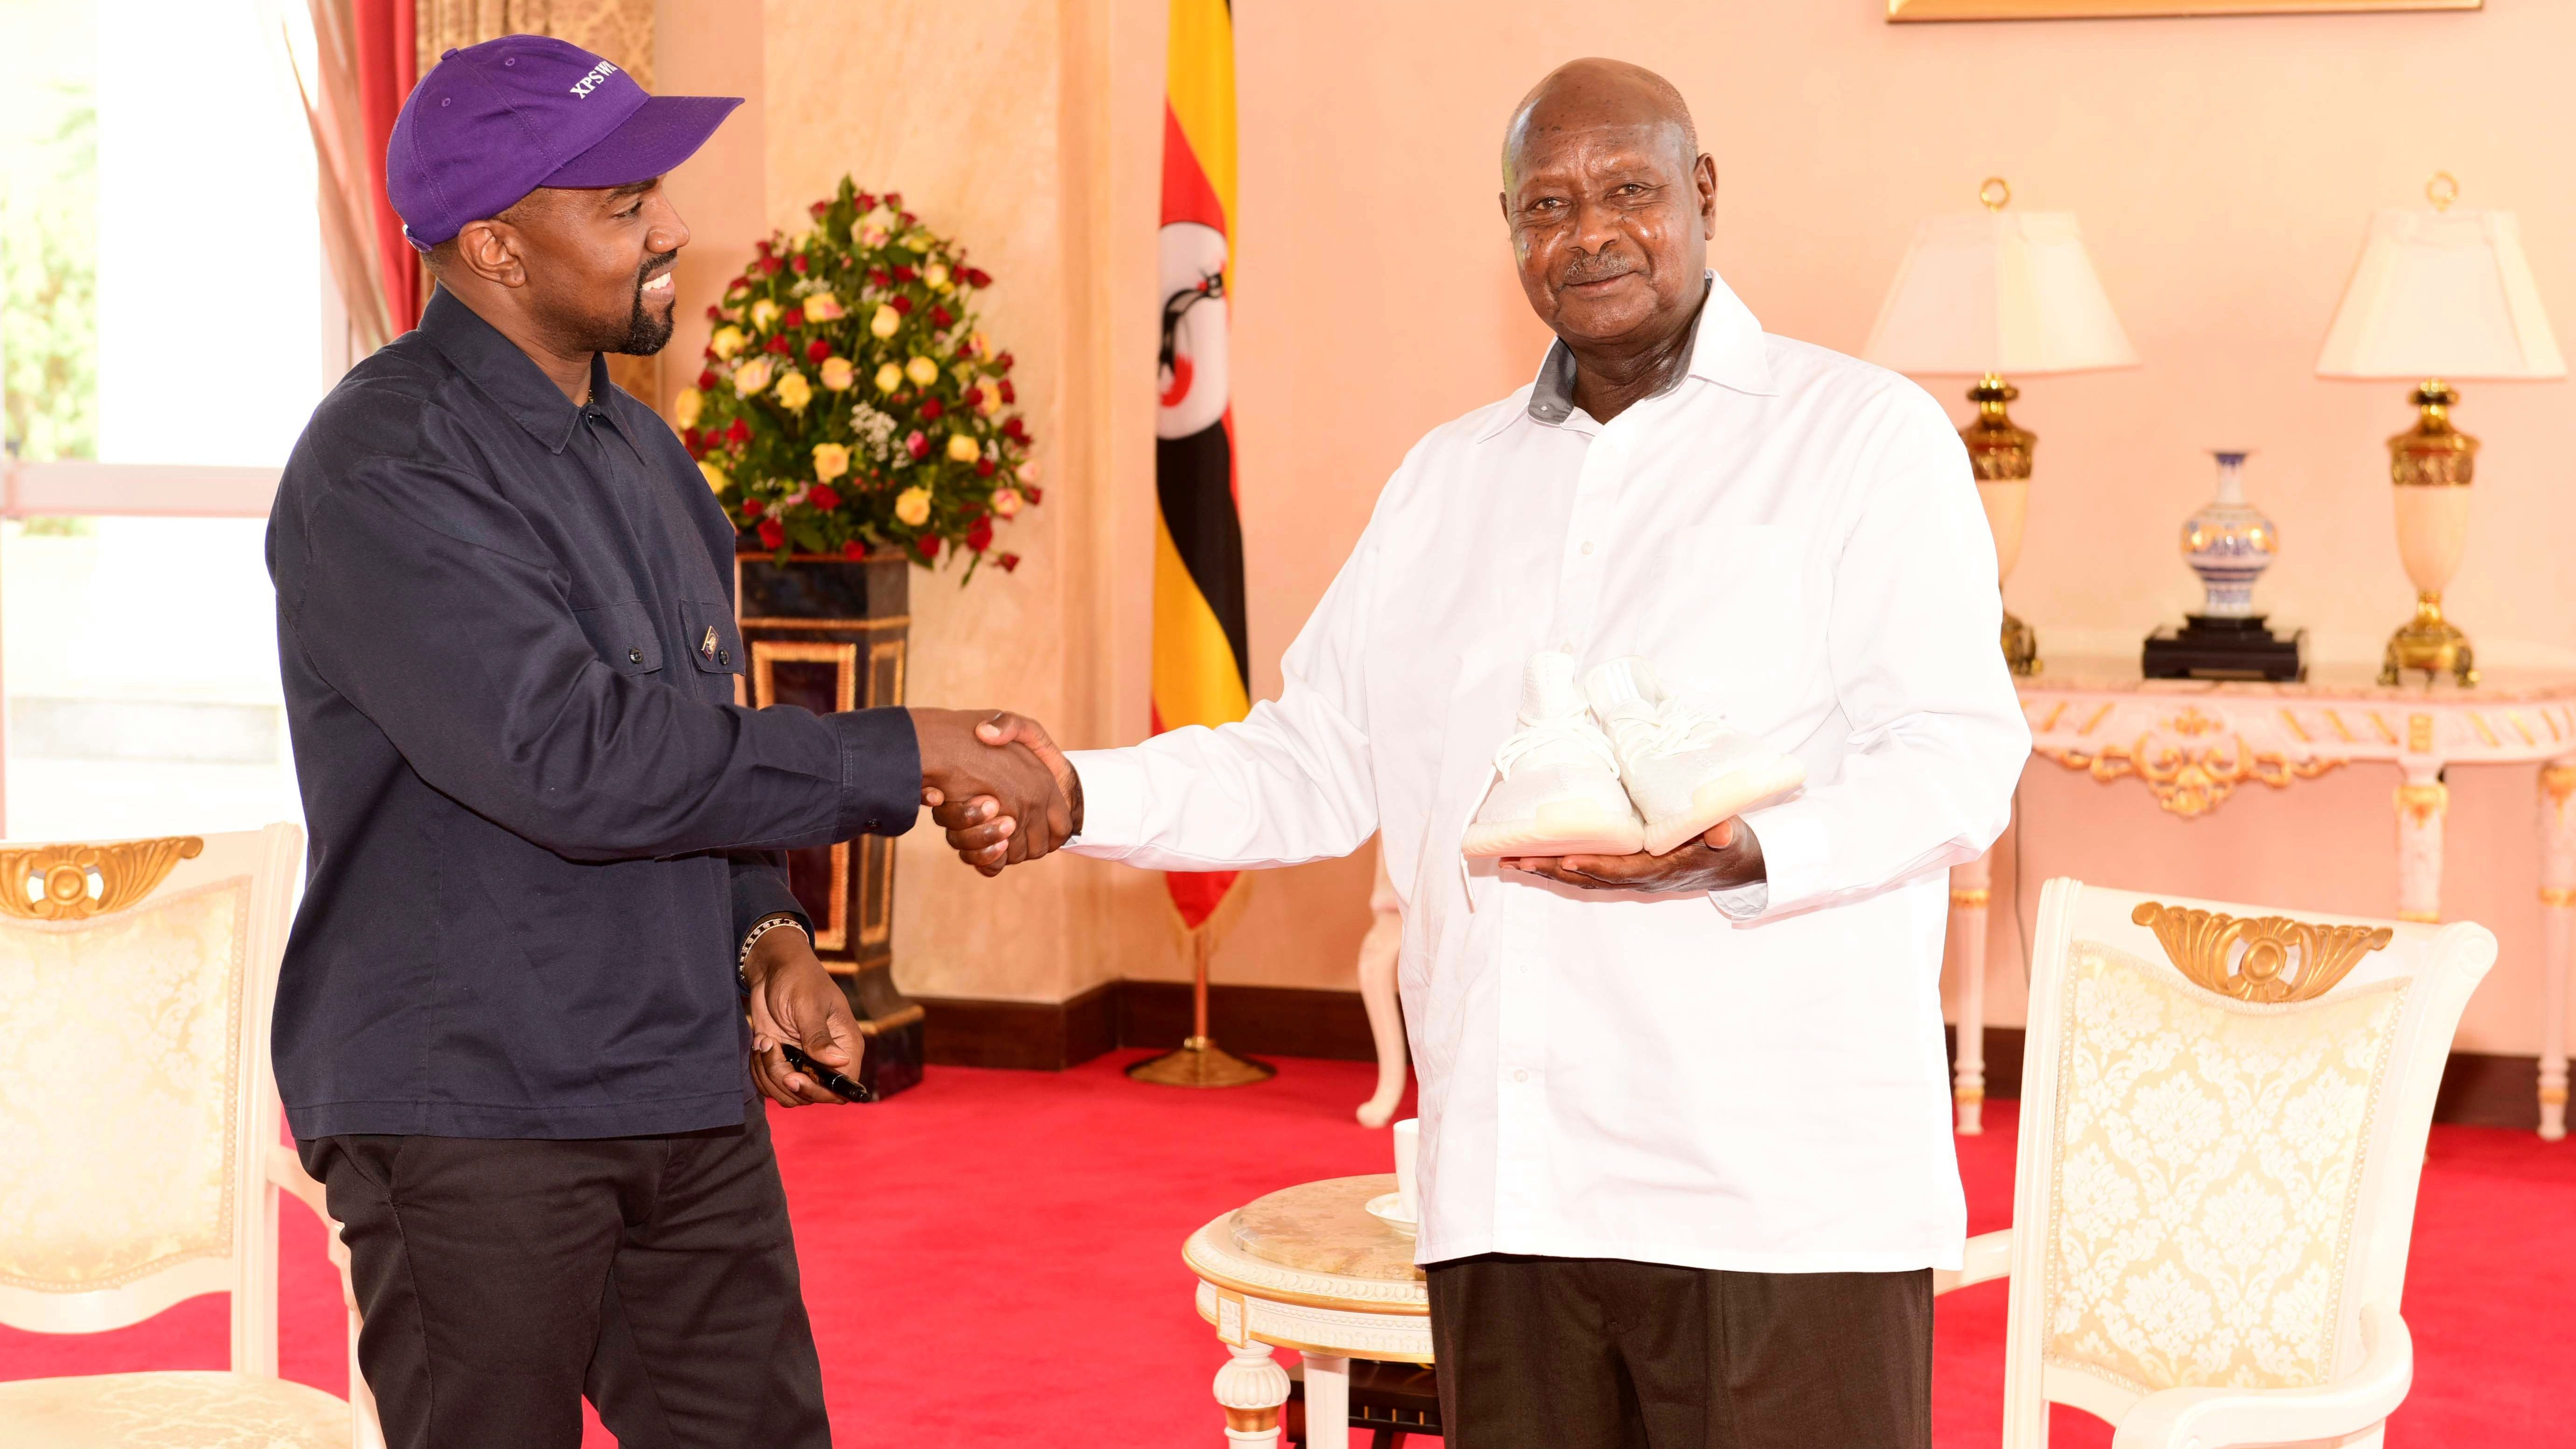 Kanye West's trip to Uganda is tone deaf and out of sync